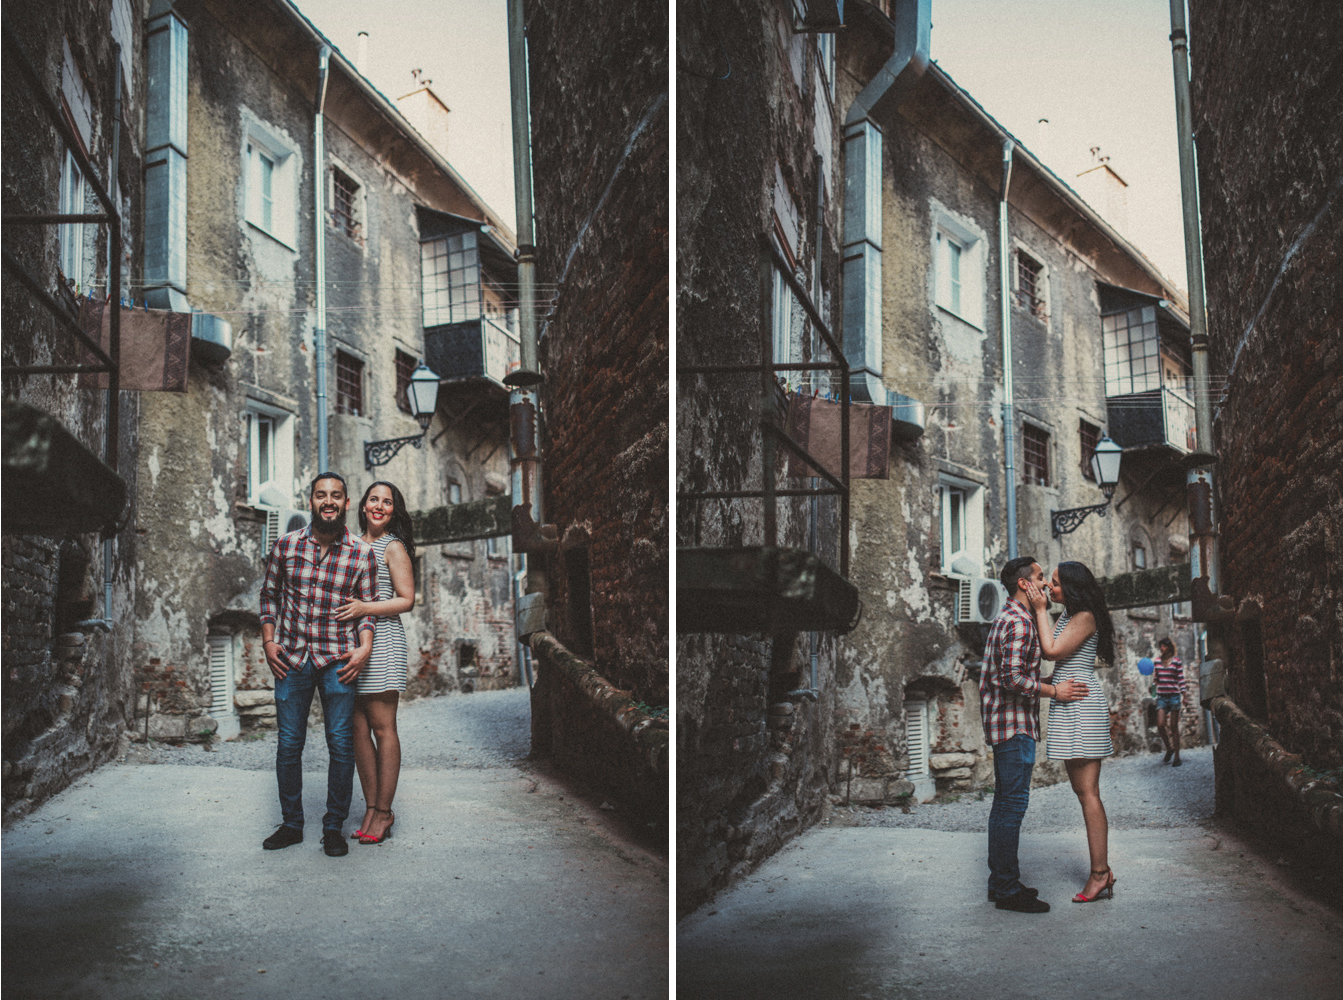 1 hvar istria zagreb wedding engagement venues croatia wedding photographer fotografiranje vjenčanja (12 of 29) copy.jpg